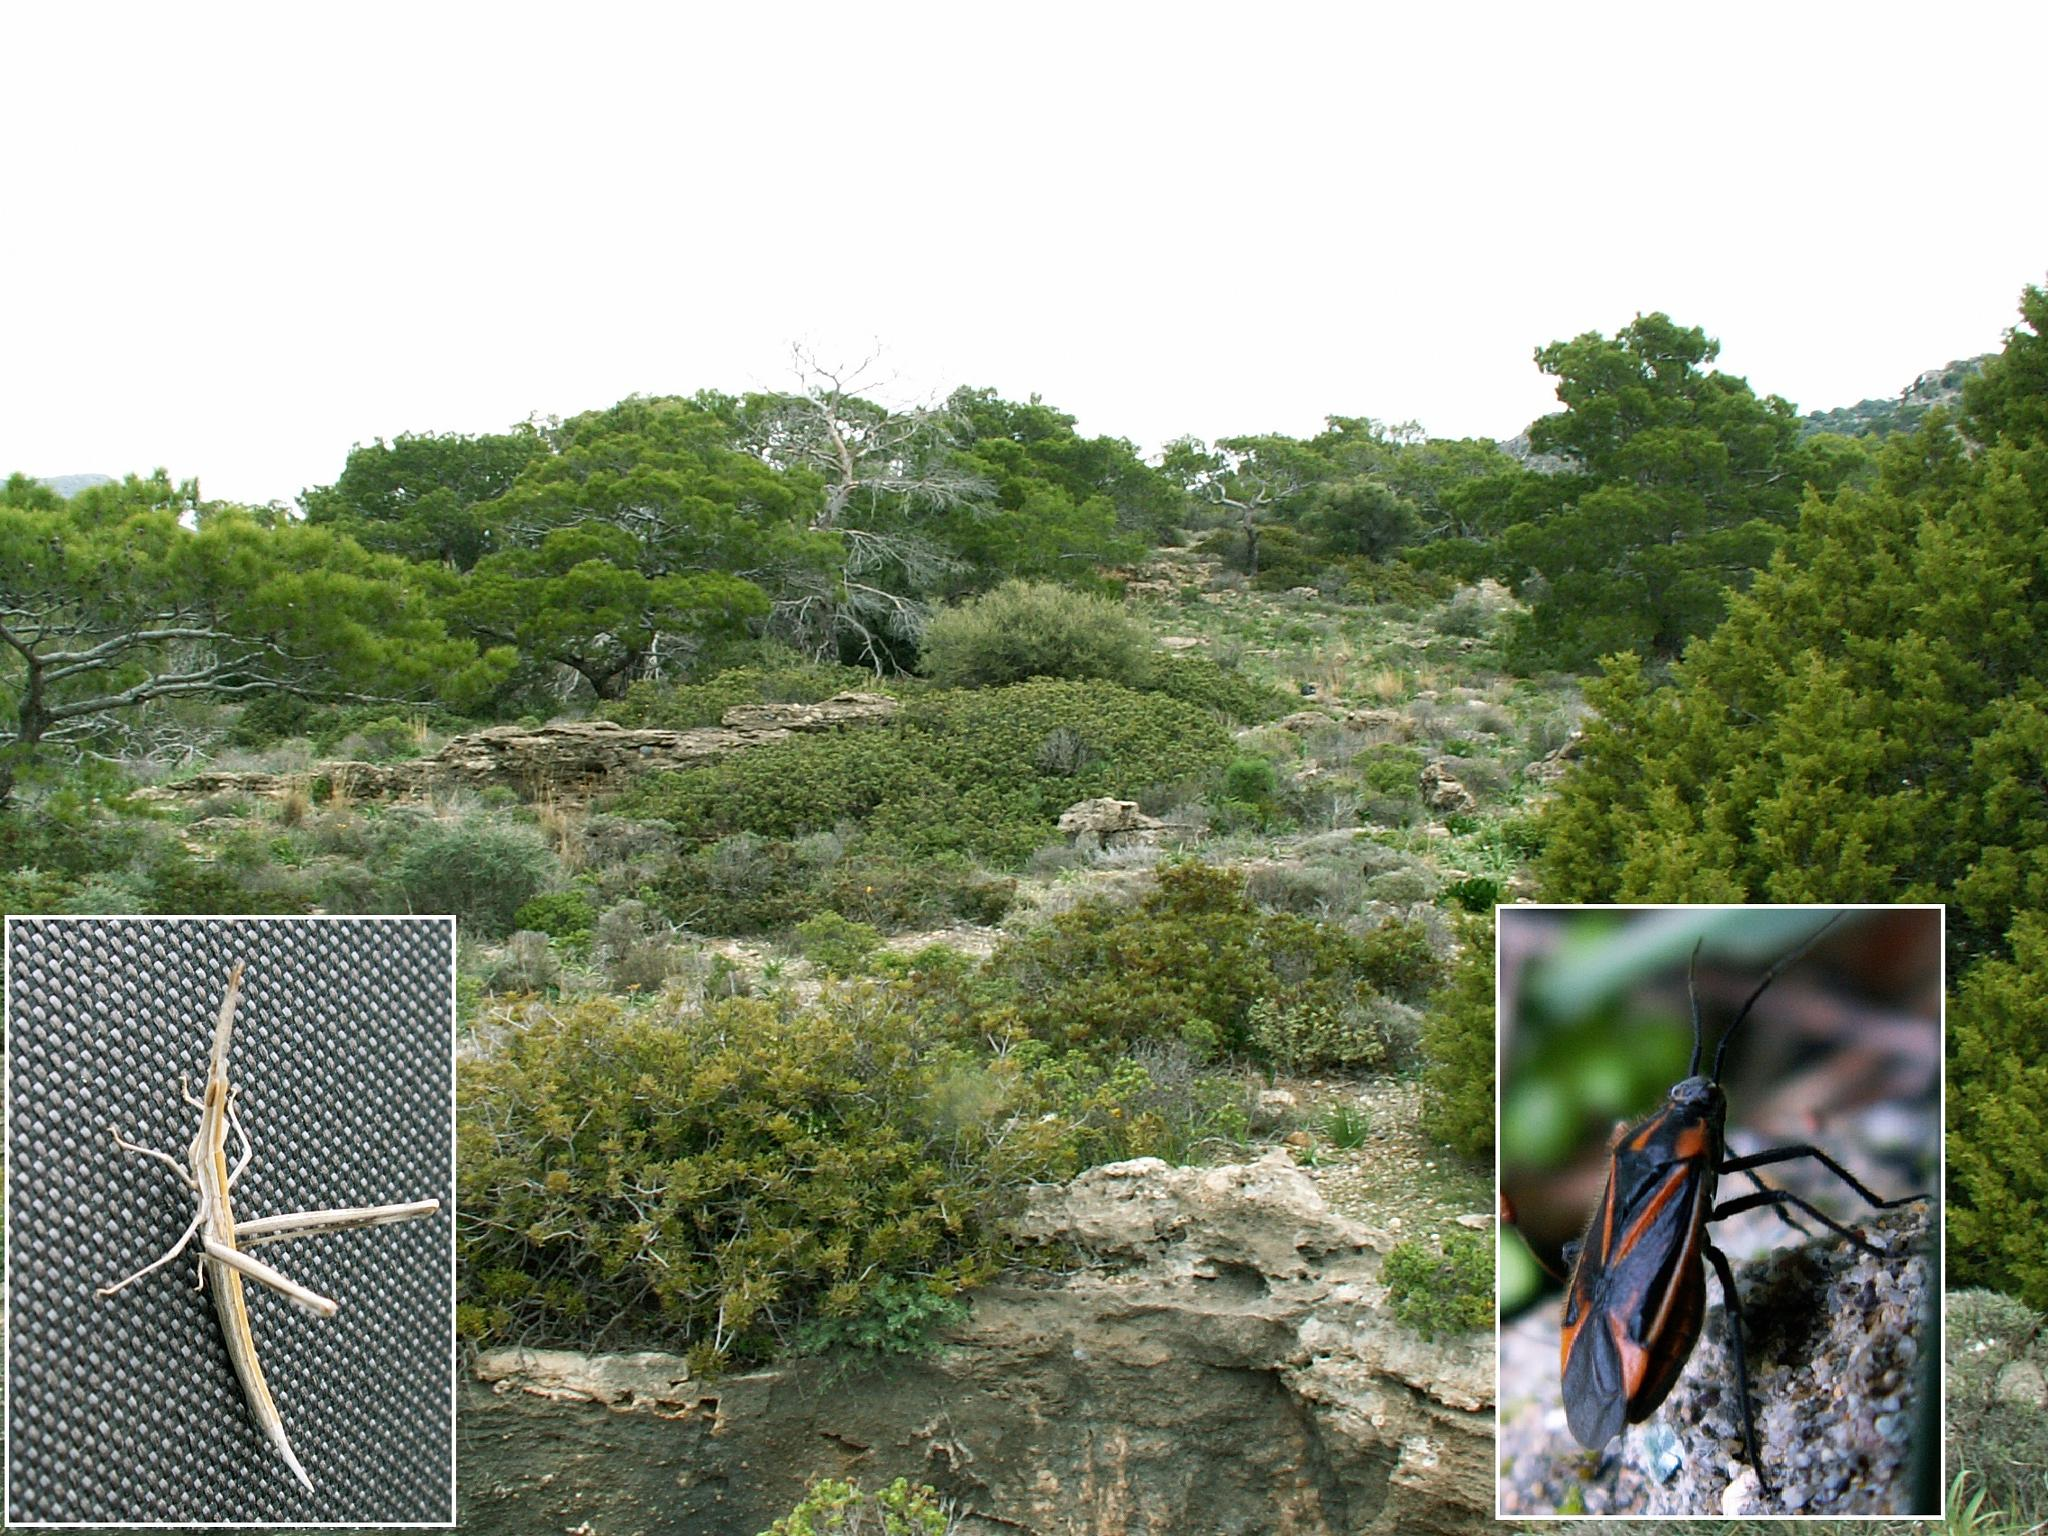 Discover #Insects, #Birds and #Flowers on a hidden #Crete plateau:  http://cretenature.blogspot.co.u by Steve Daniels